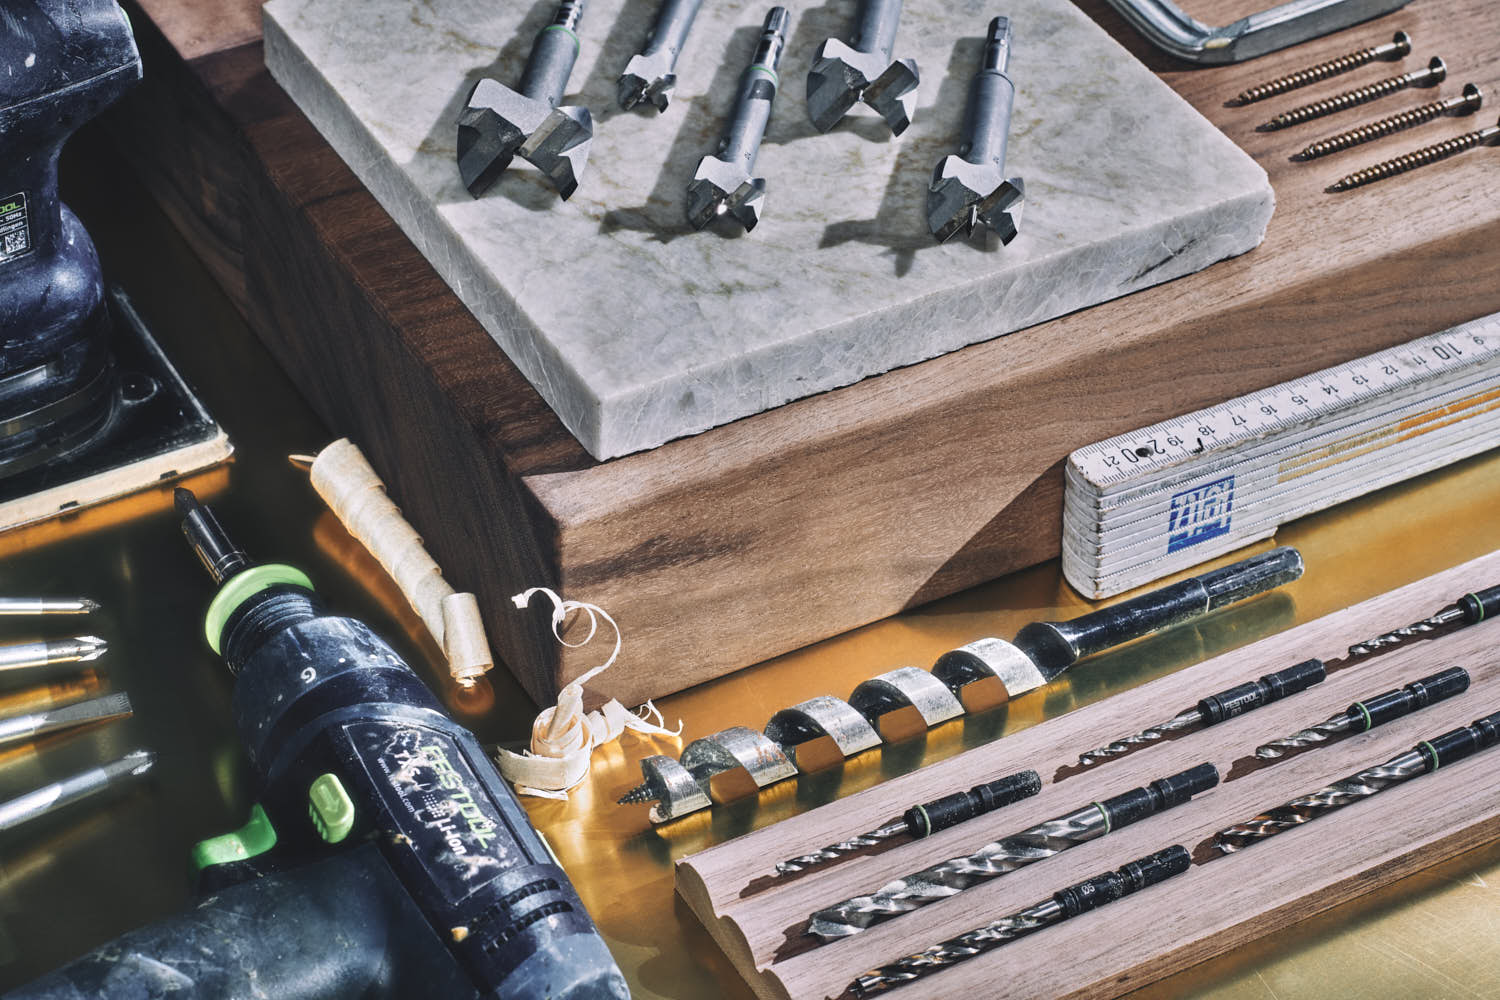 still life product photography of luxury bespoke joinery workshop tools by yorkshire photographer matthew lloyd 5.jpg